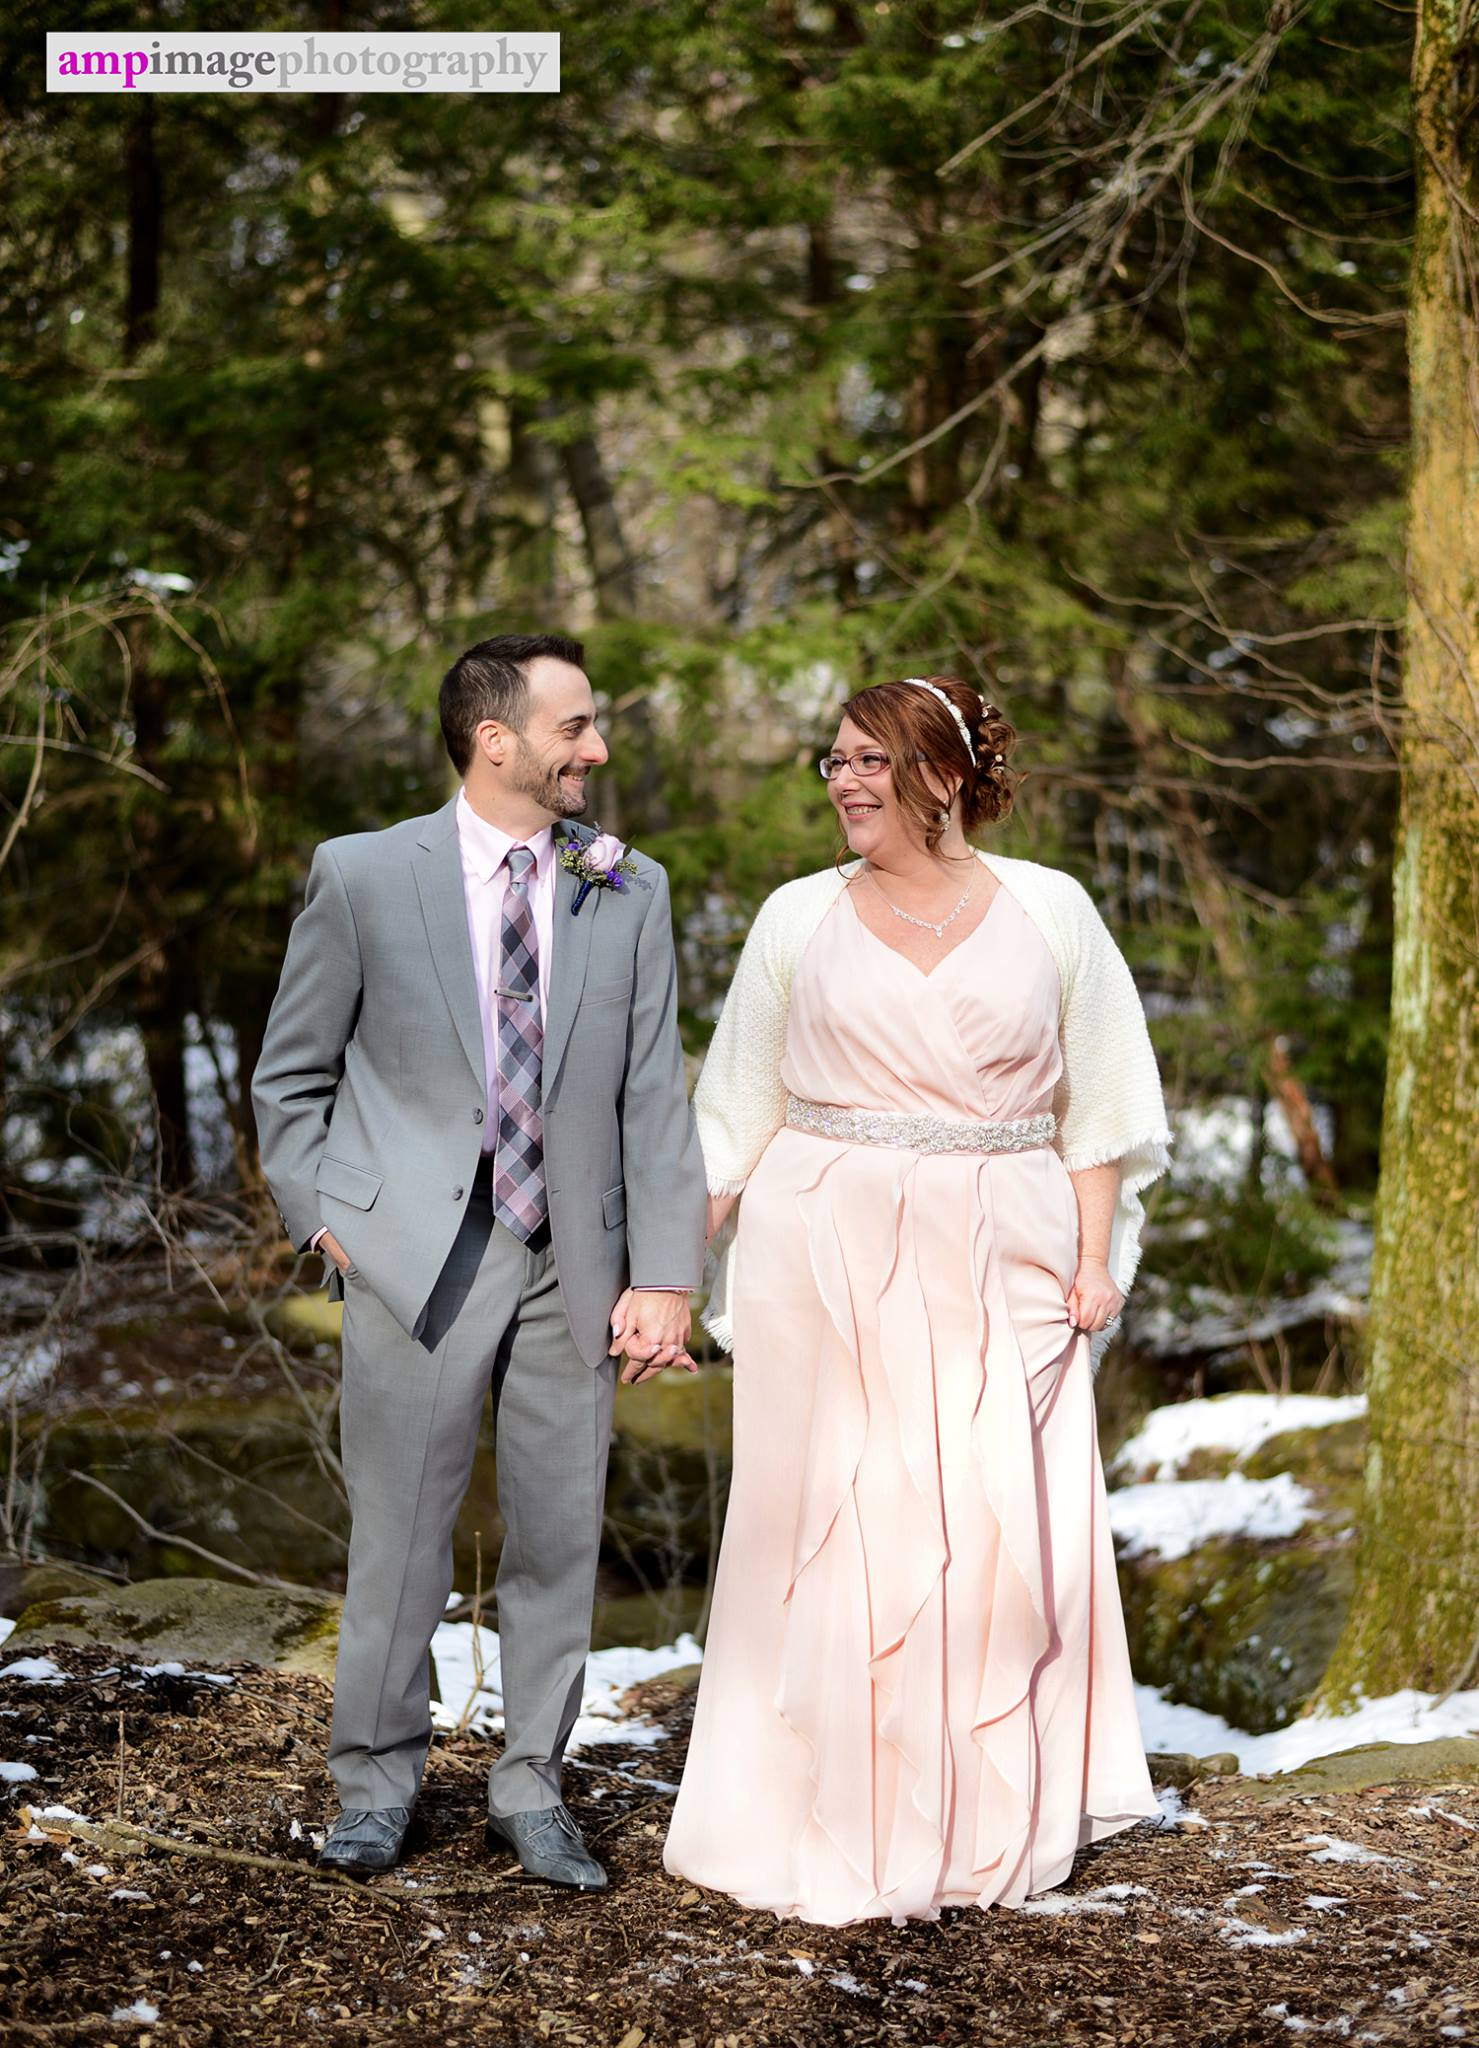 Amy & Steve | Wedding | Downtown Youngstown | Mill Creek Park | Lily Pond | Bears Den Cabin